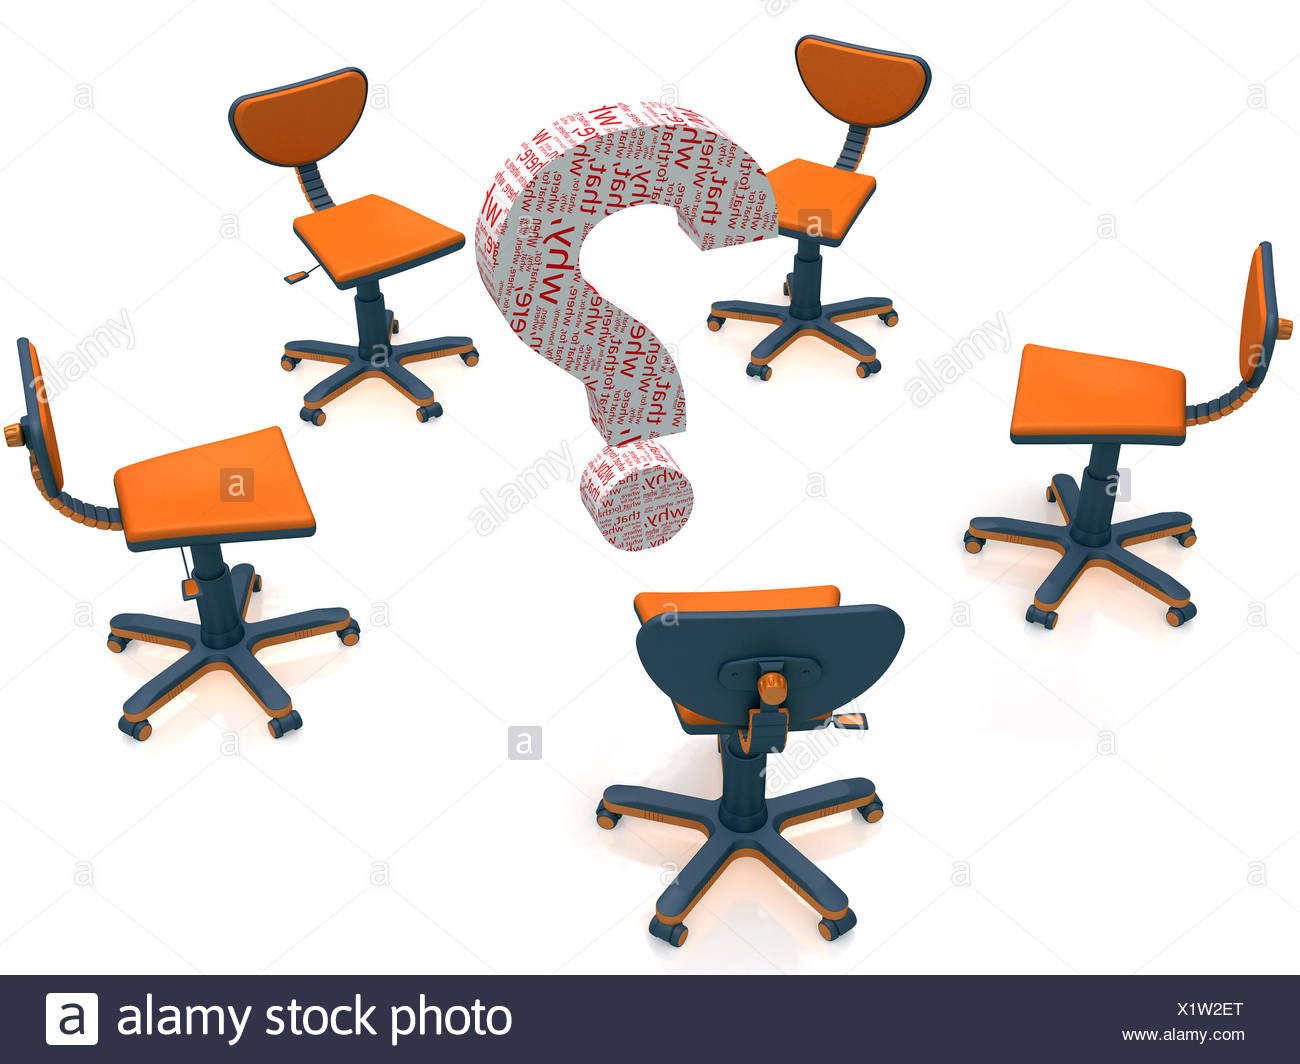 discussion and the question - Stock Image